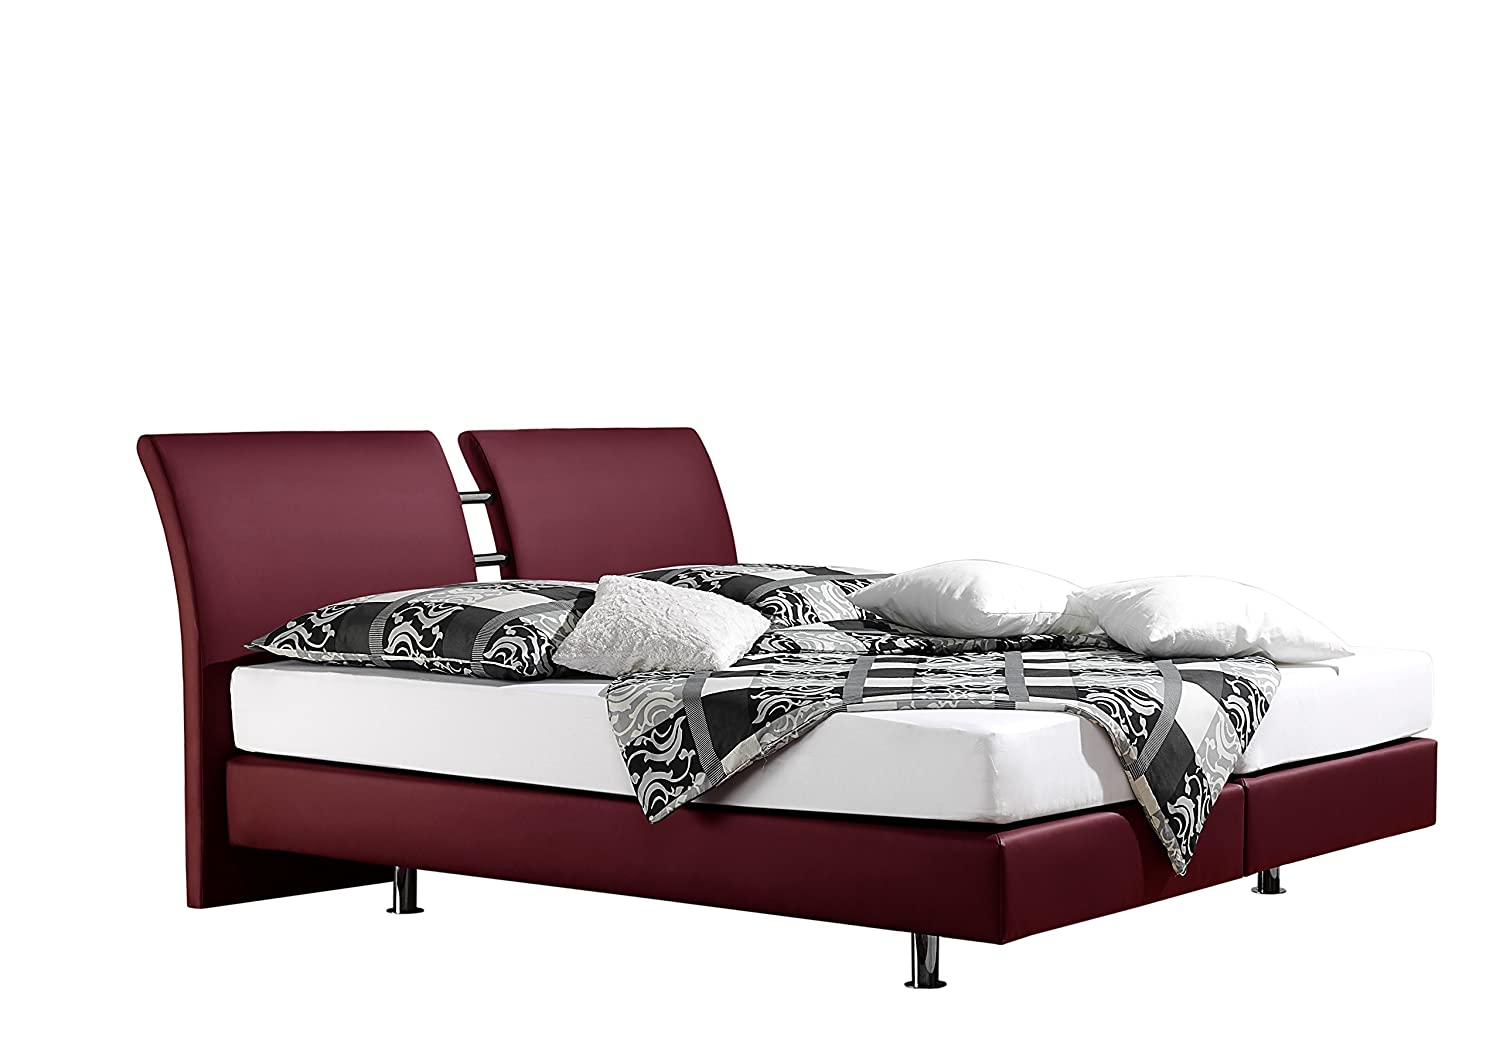 Maintal Betten 236816-4793 Boxspringbett Polo 180 x 200 cm, kunstleder bordeaux